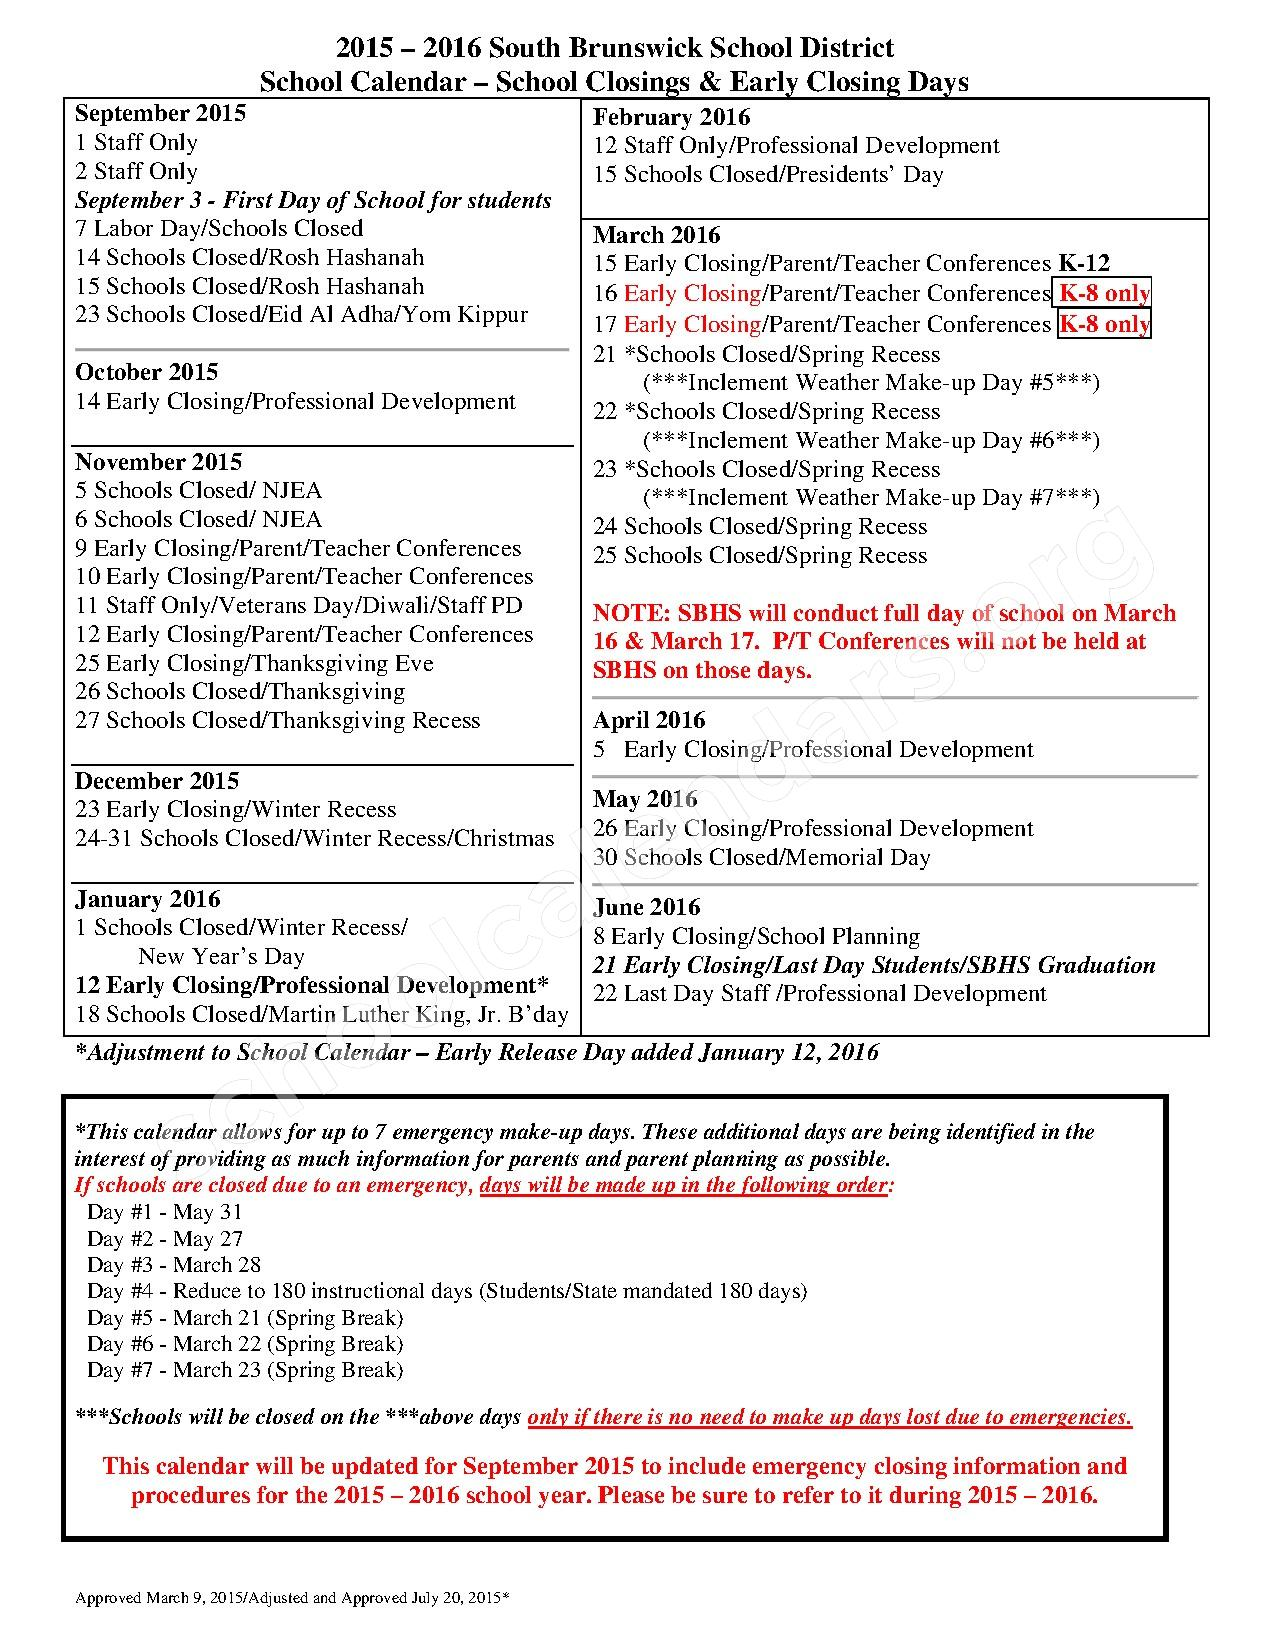 2015 - 2016 School Calendar – South Brunswick School District – page 1